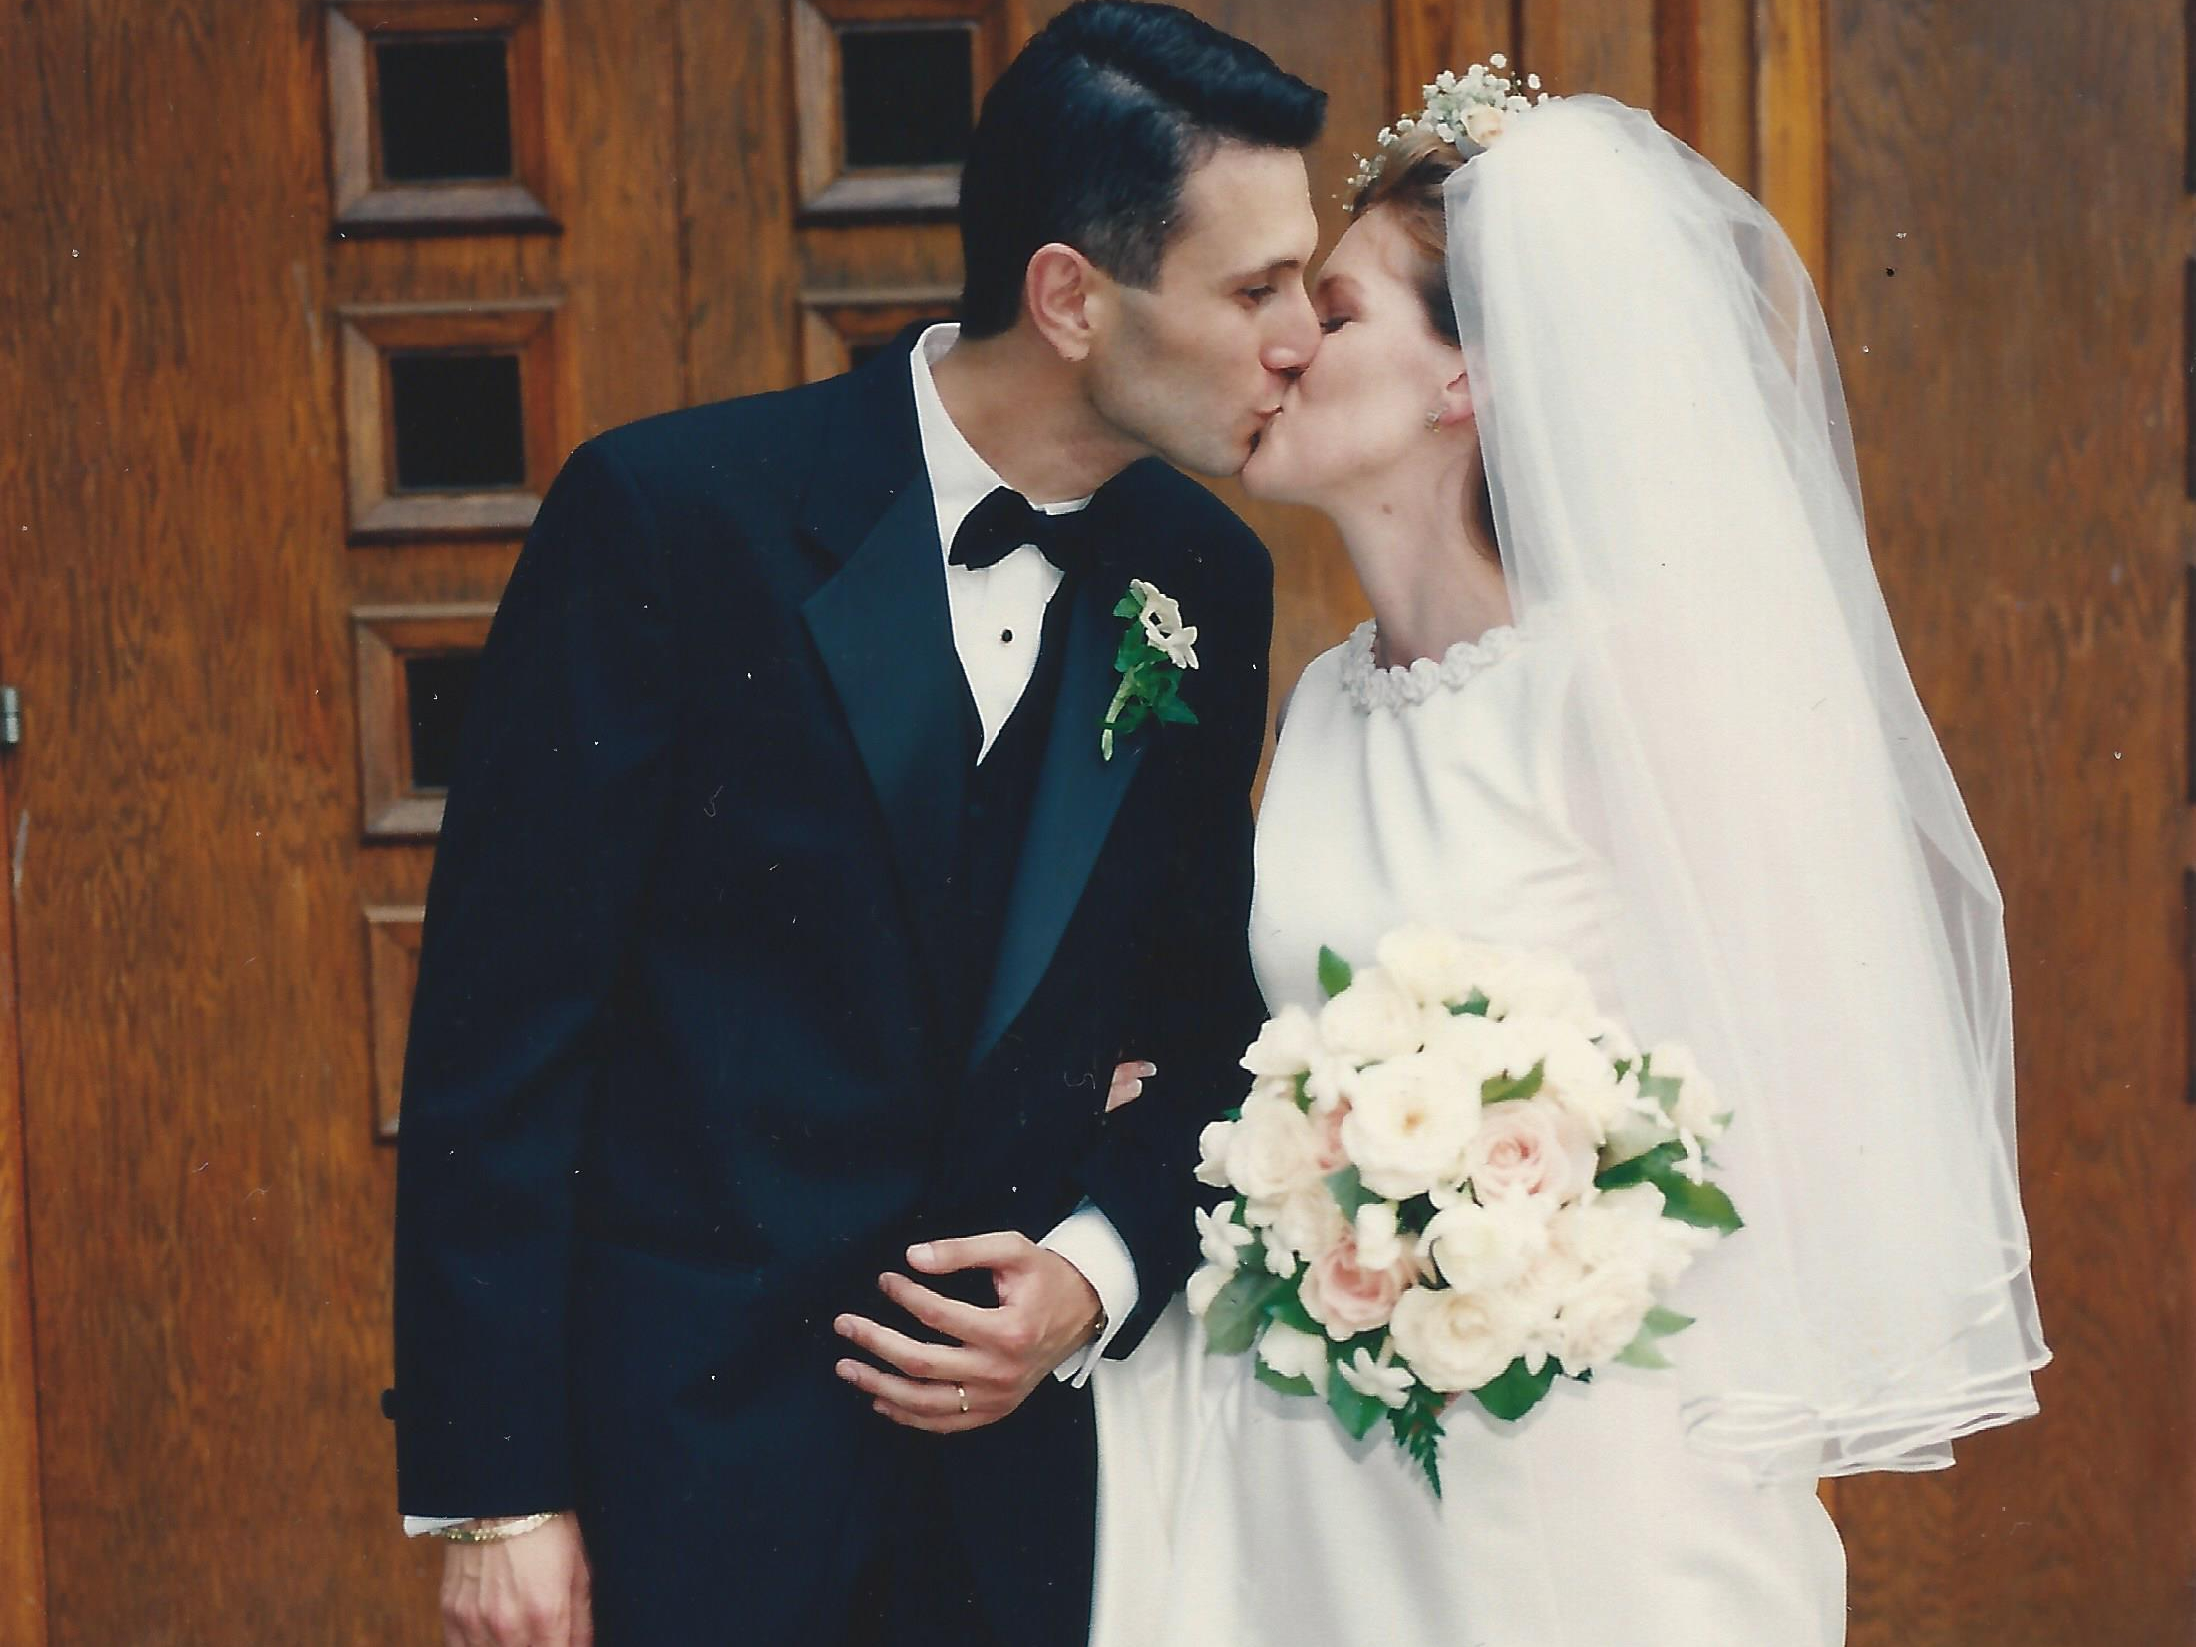 Celebrating 22nd Wedding Anniversary & Thoughts on a Happy Marriage